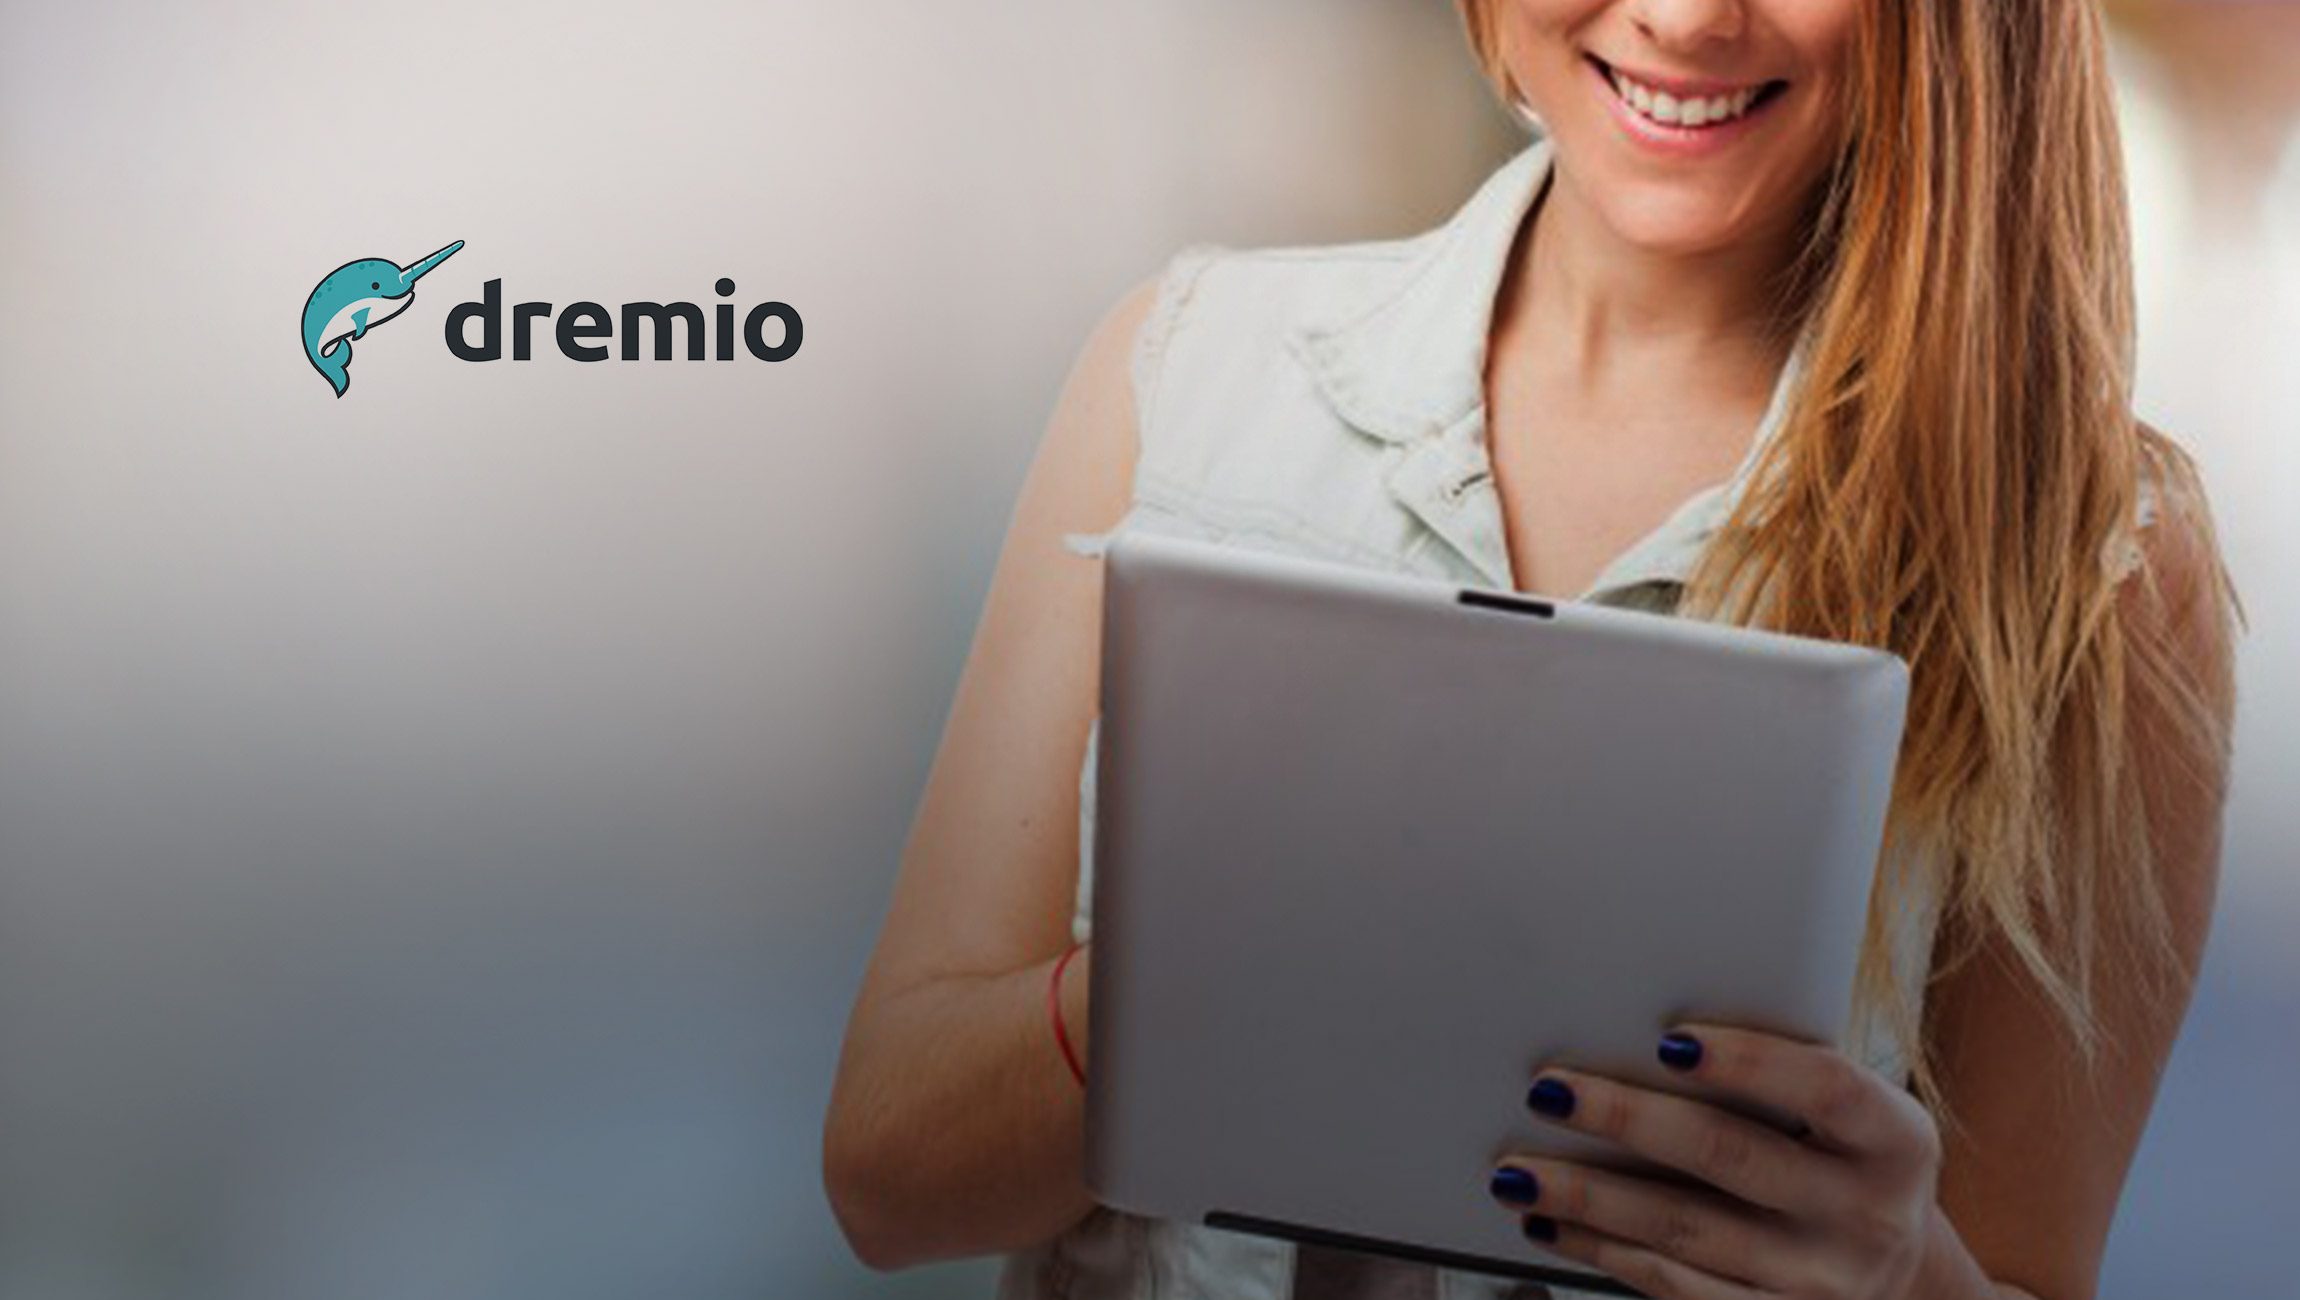 Dremio to Support the Launch of Professional Services in AWS Marketplace